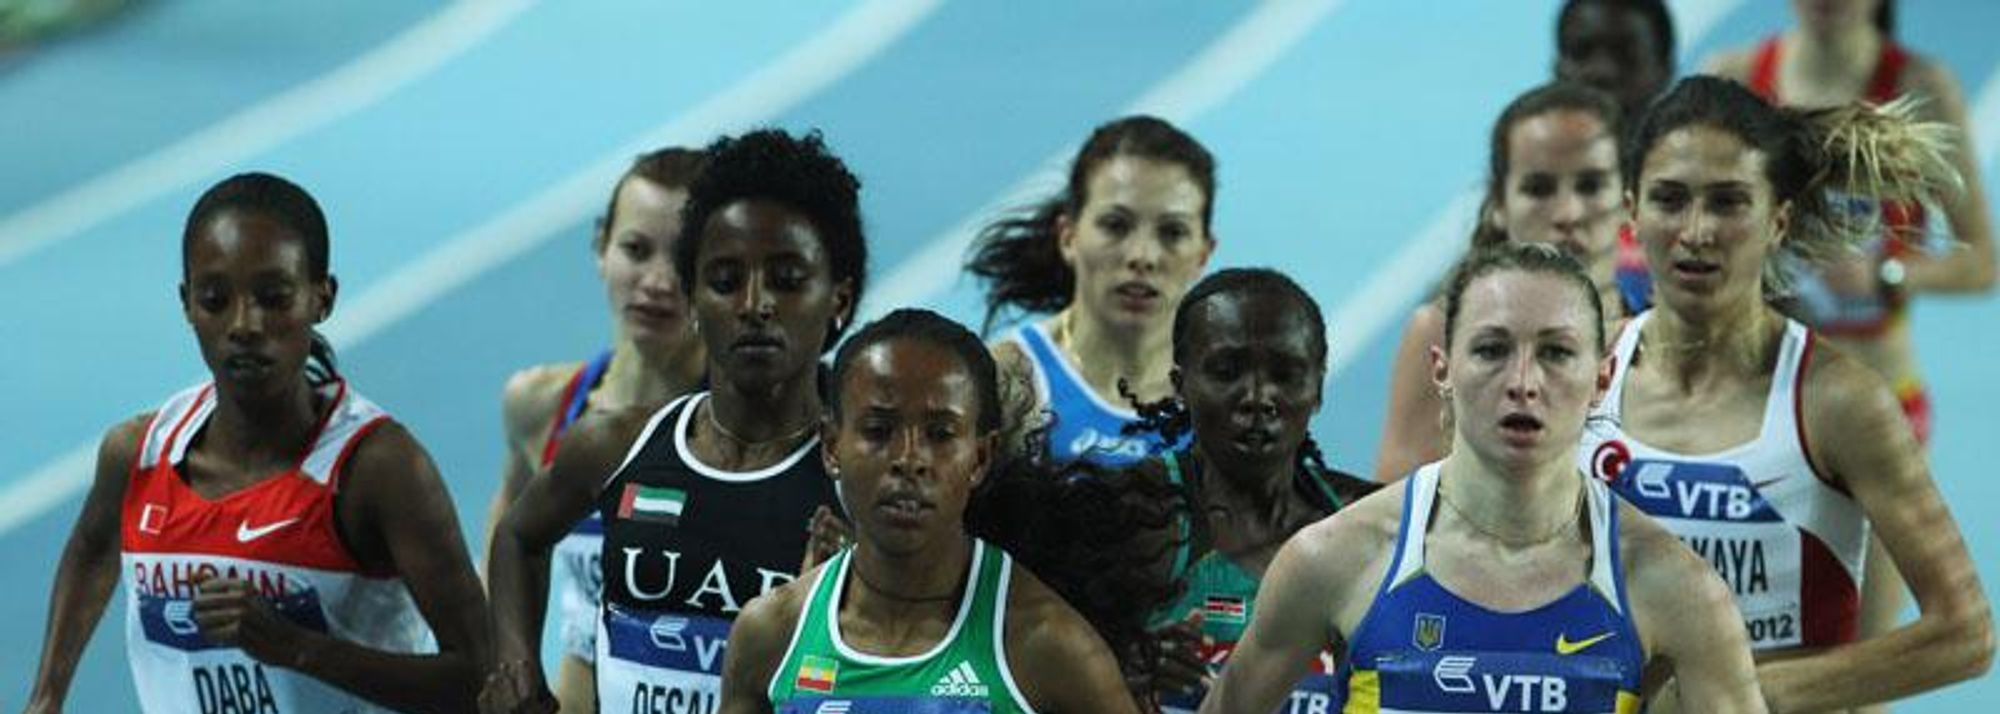 An exhilarating denouement to the 14th IAAF Indoor Championships in Istanbul is guaranteed with 36 medals up for grabs in a little over three-and-a-half hours of action in the Atakoy Athletics Arena today.